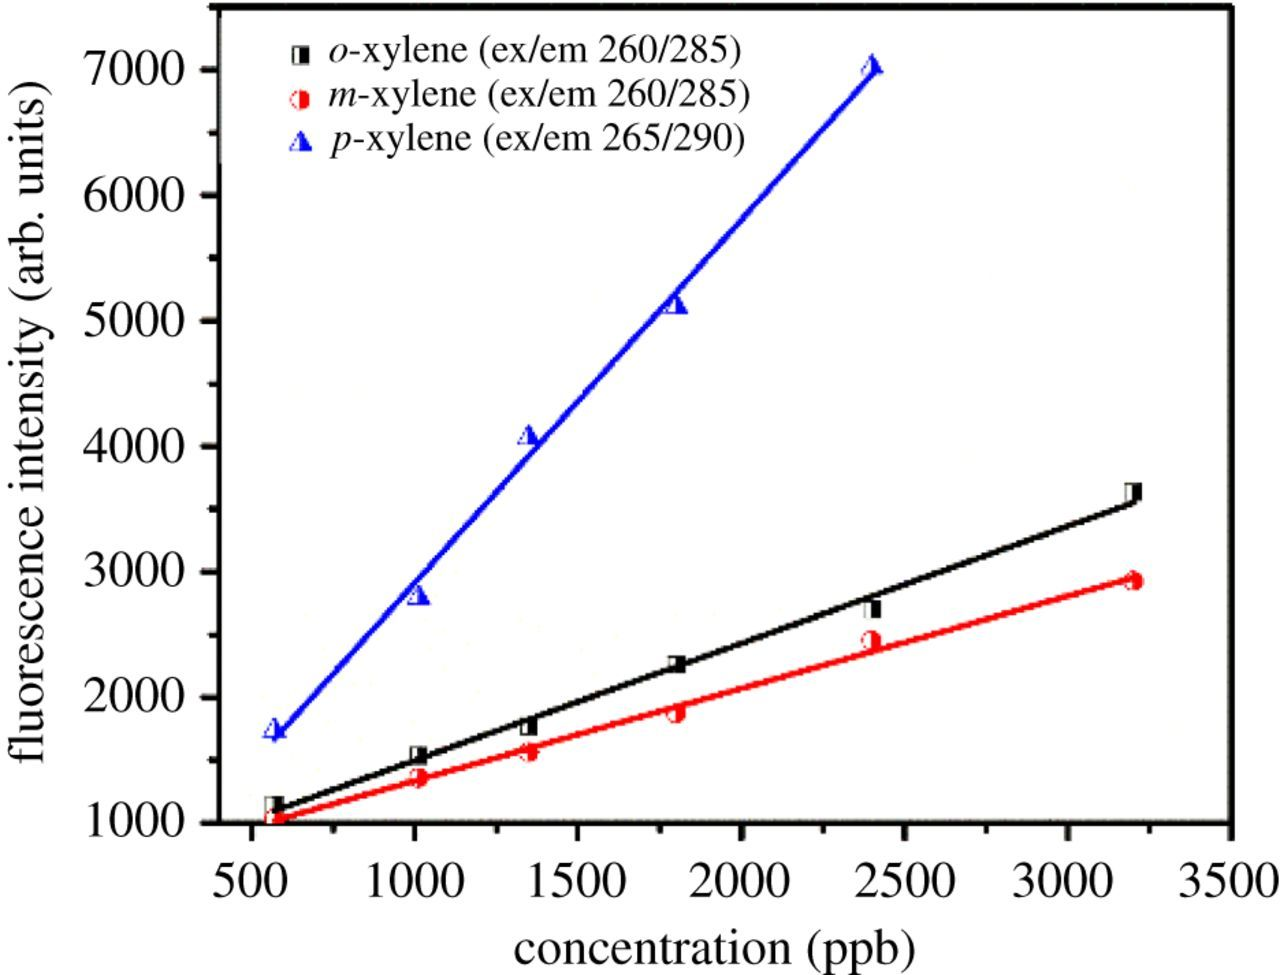 Muebles Bm 2000 Fluorescence And Photophysical Properties Of Xylene Isomers In